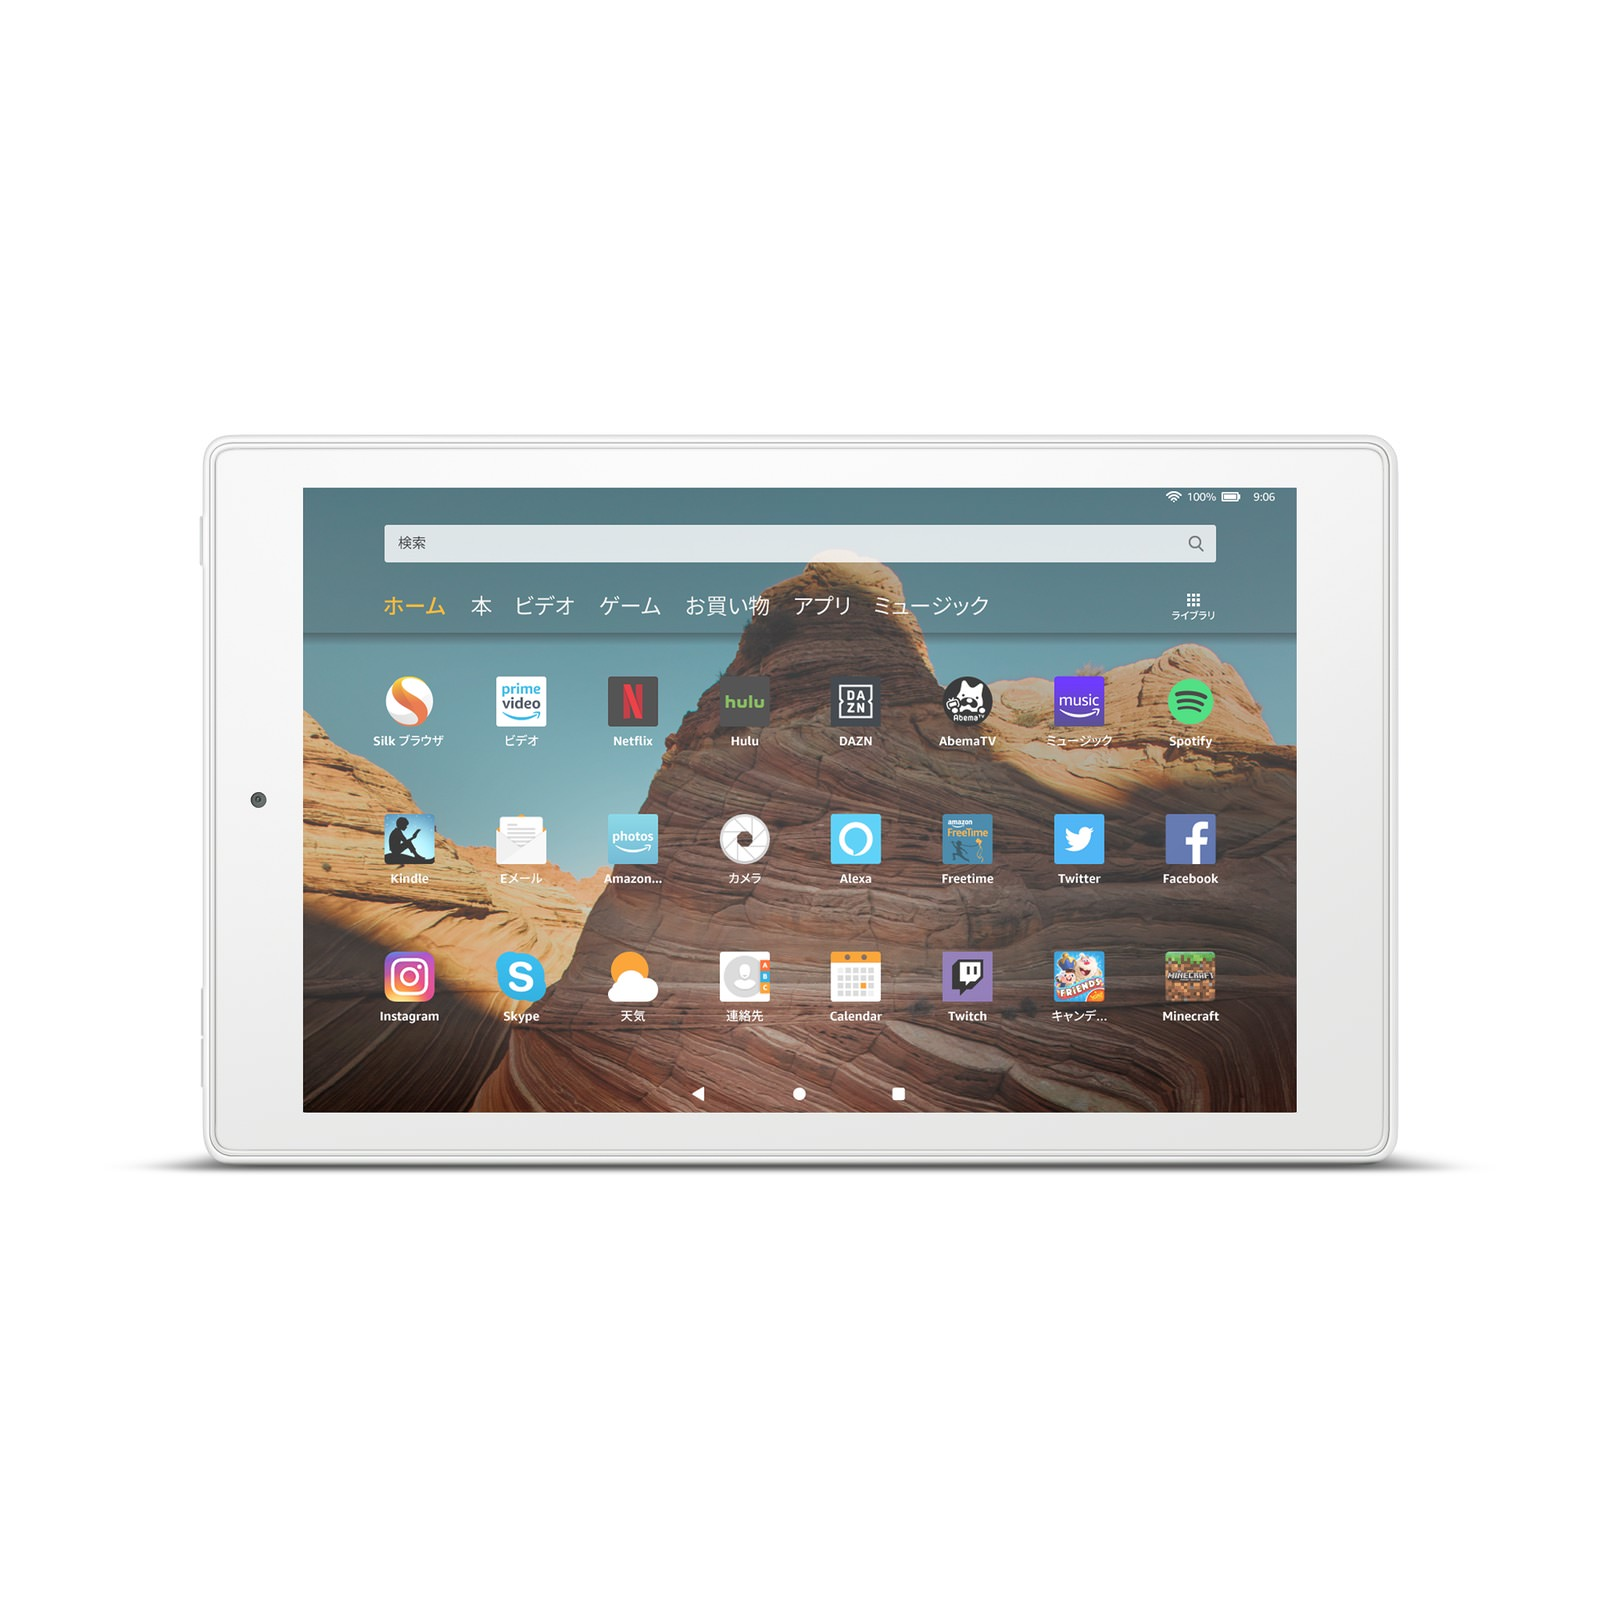 Fire-HD-10-Tablet-New-Model-06.jpg